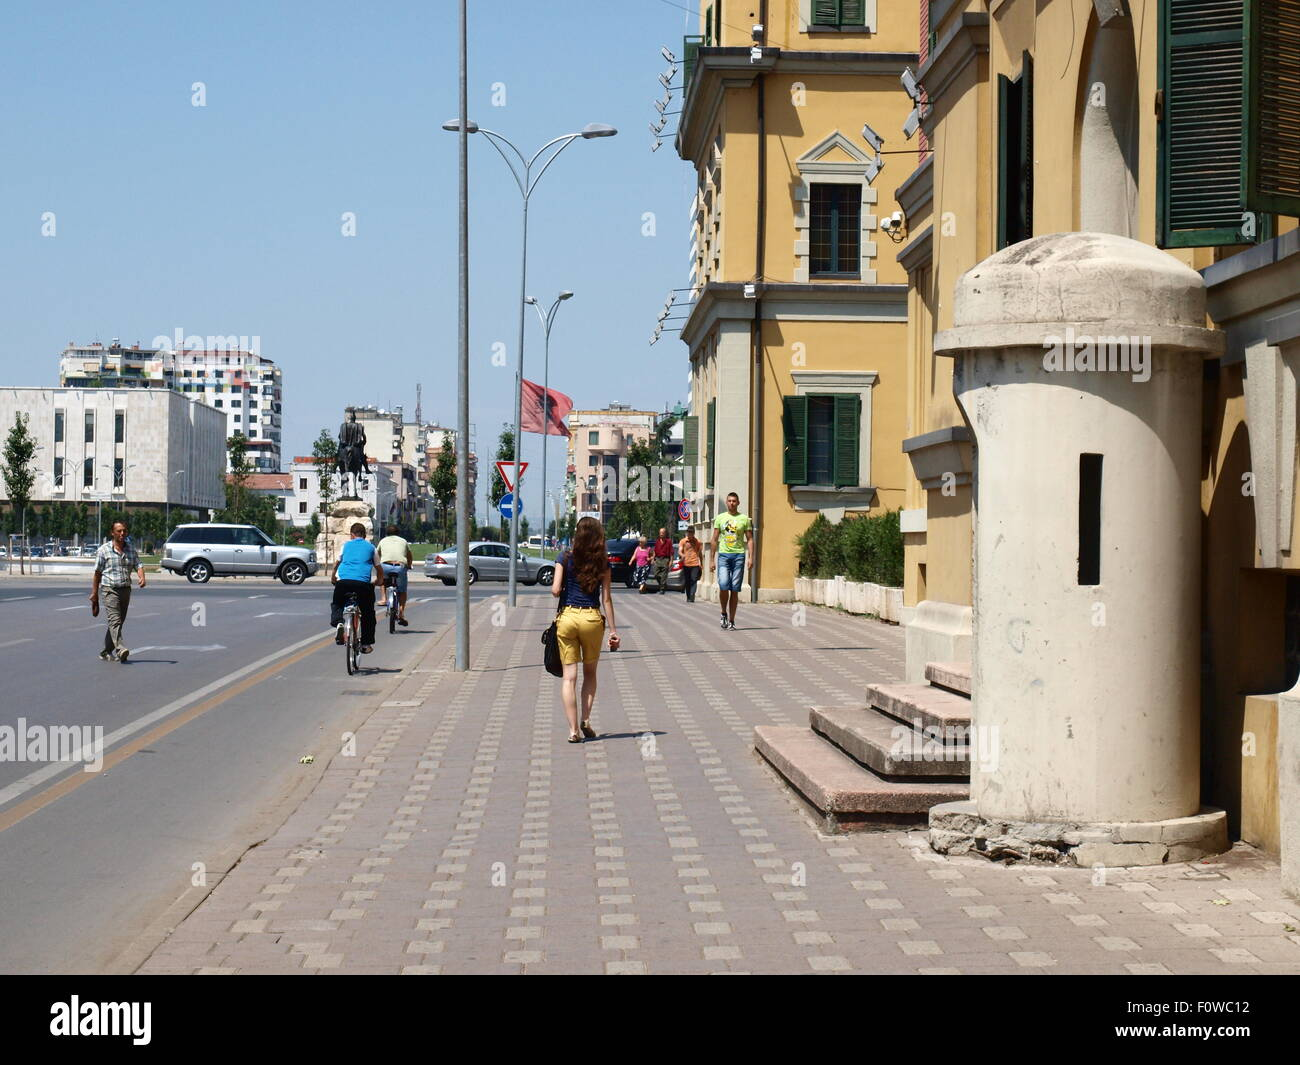 Tirana, Albania.The bunker in front of the government building. - Stock Image